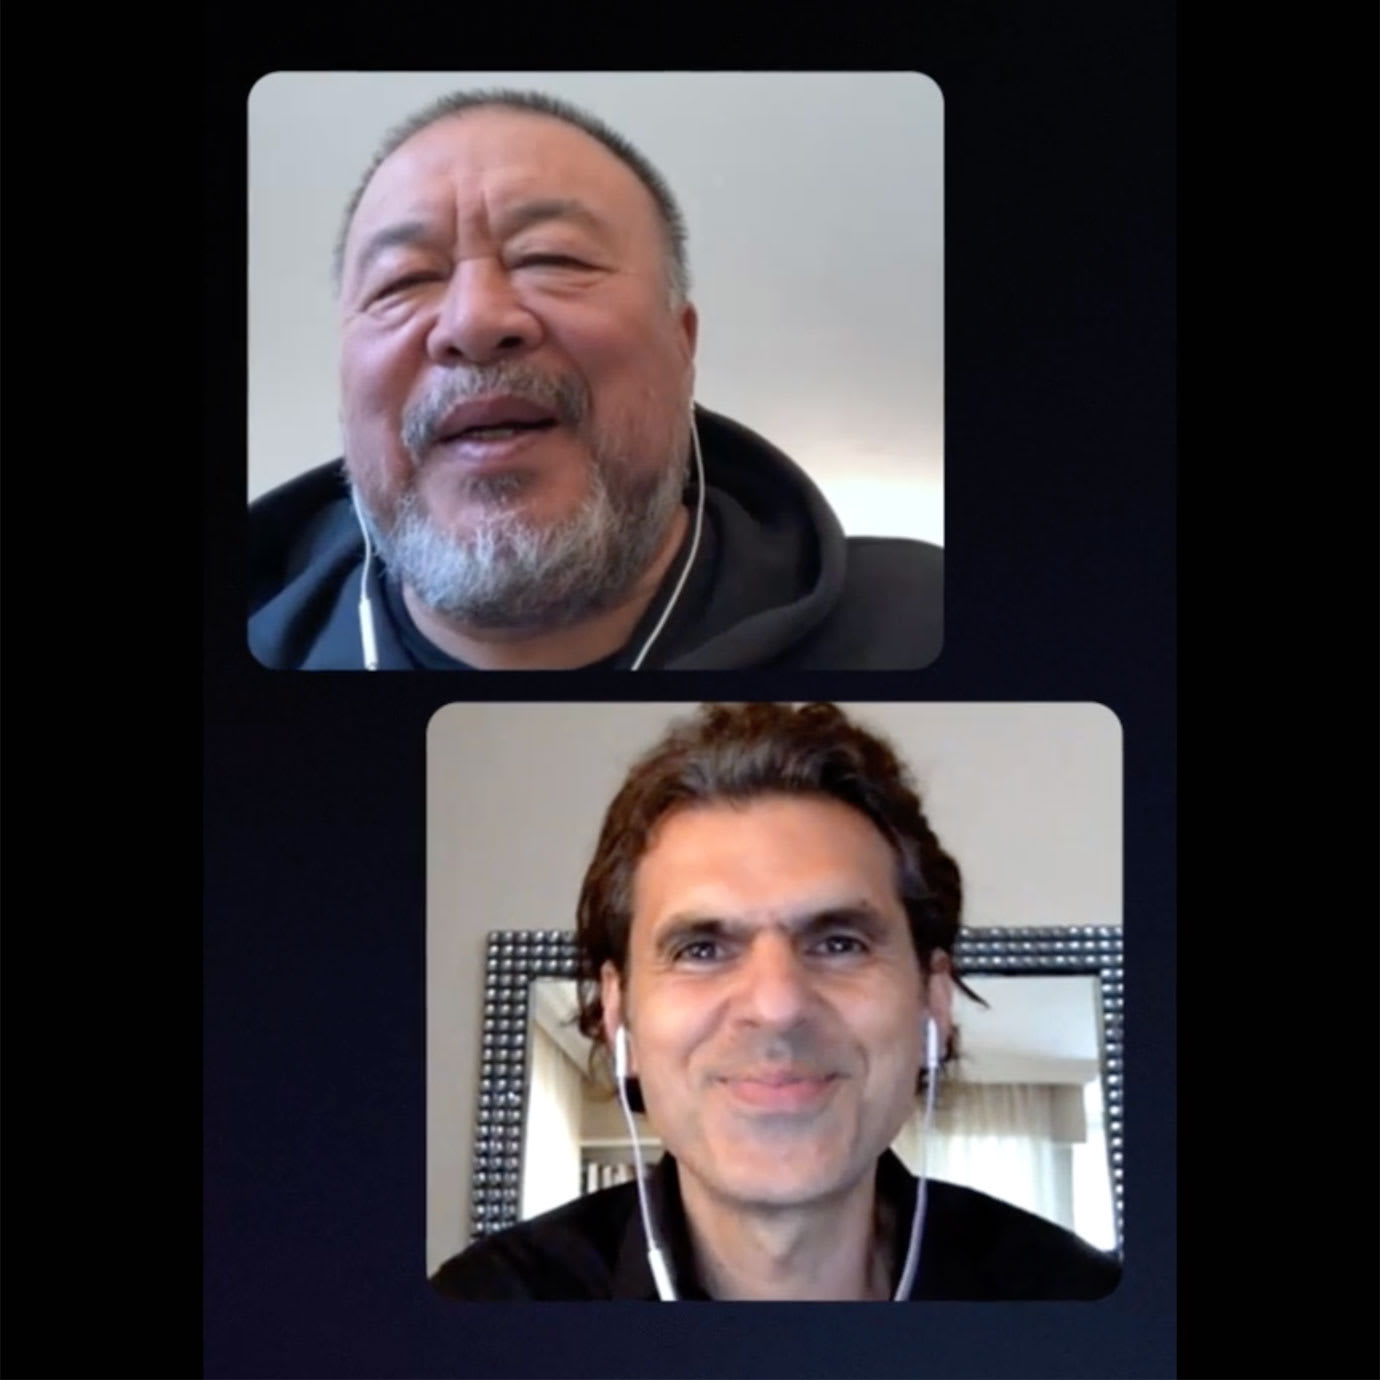 Two men having a video call conversation.